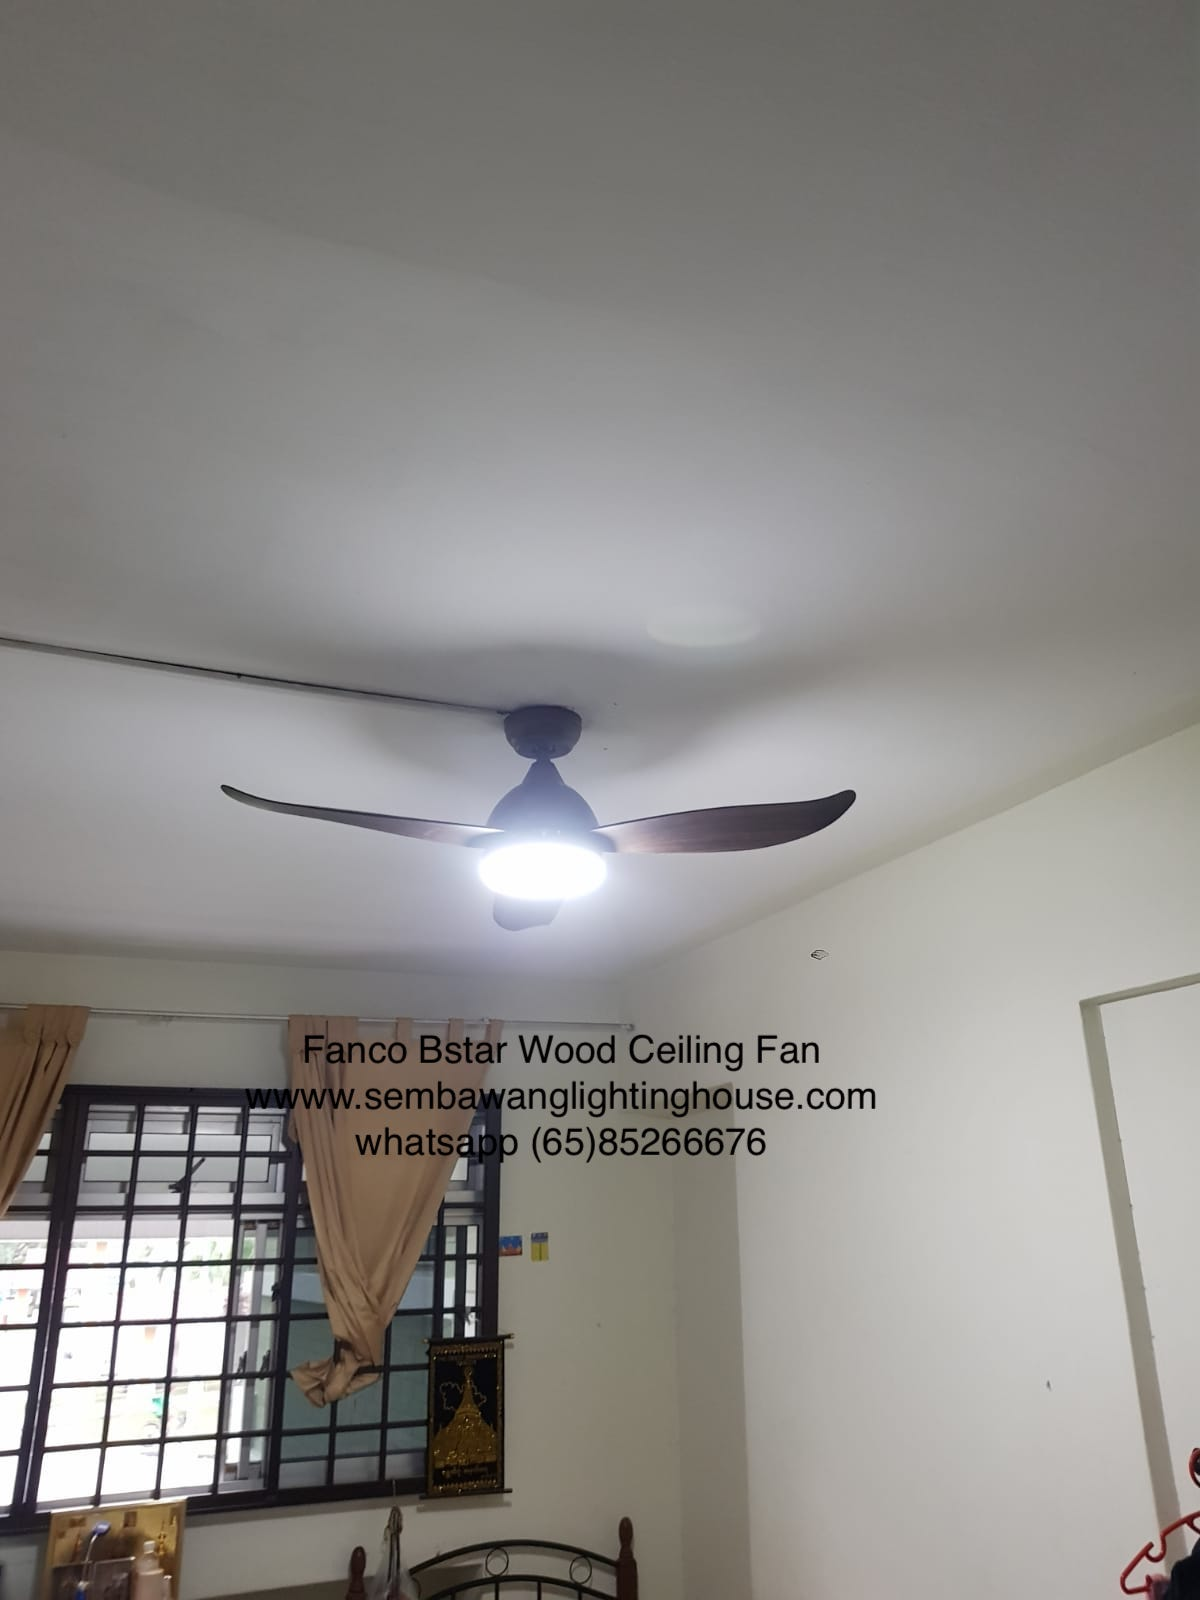 fanco-bstar-wood-ceiling-fan-sample-bedroom-sembawang-lighting-house-02.jpg